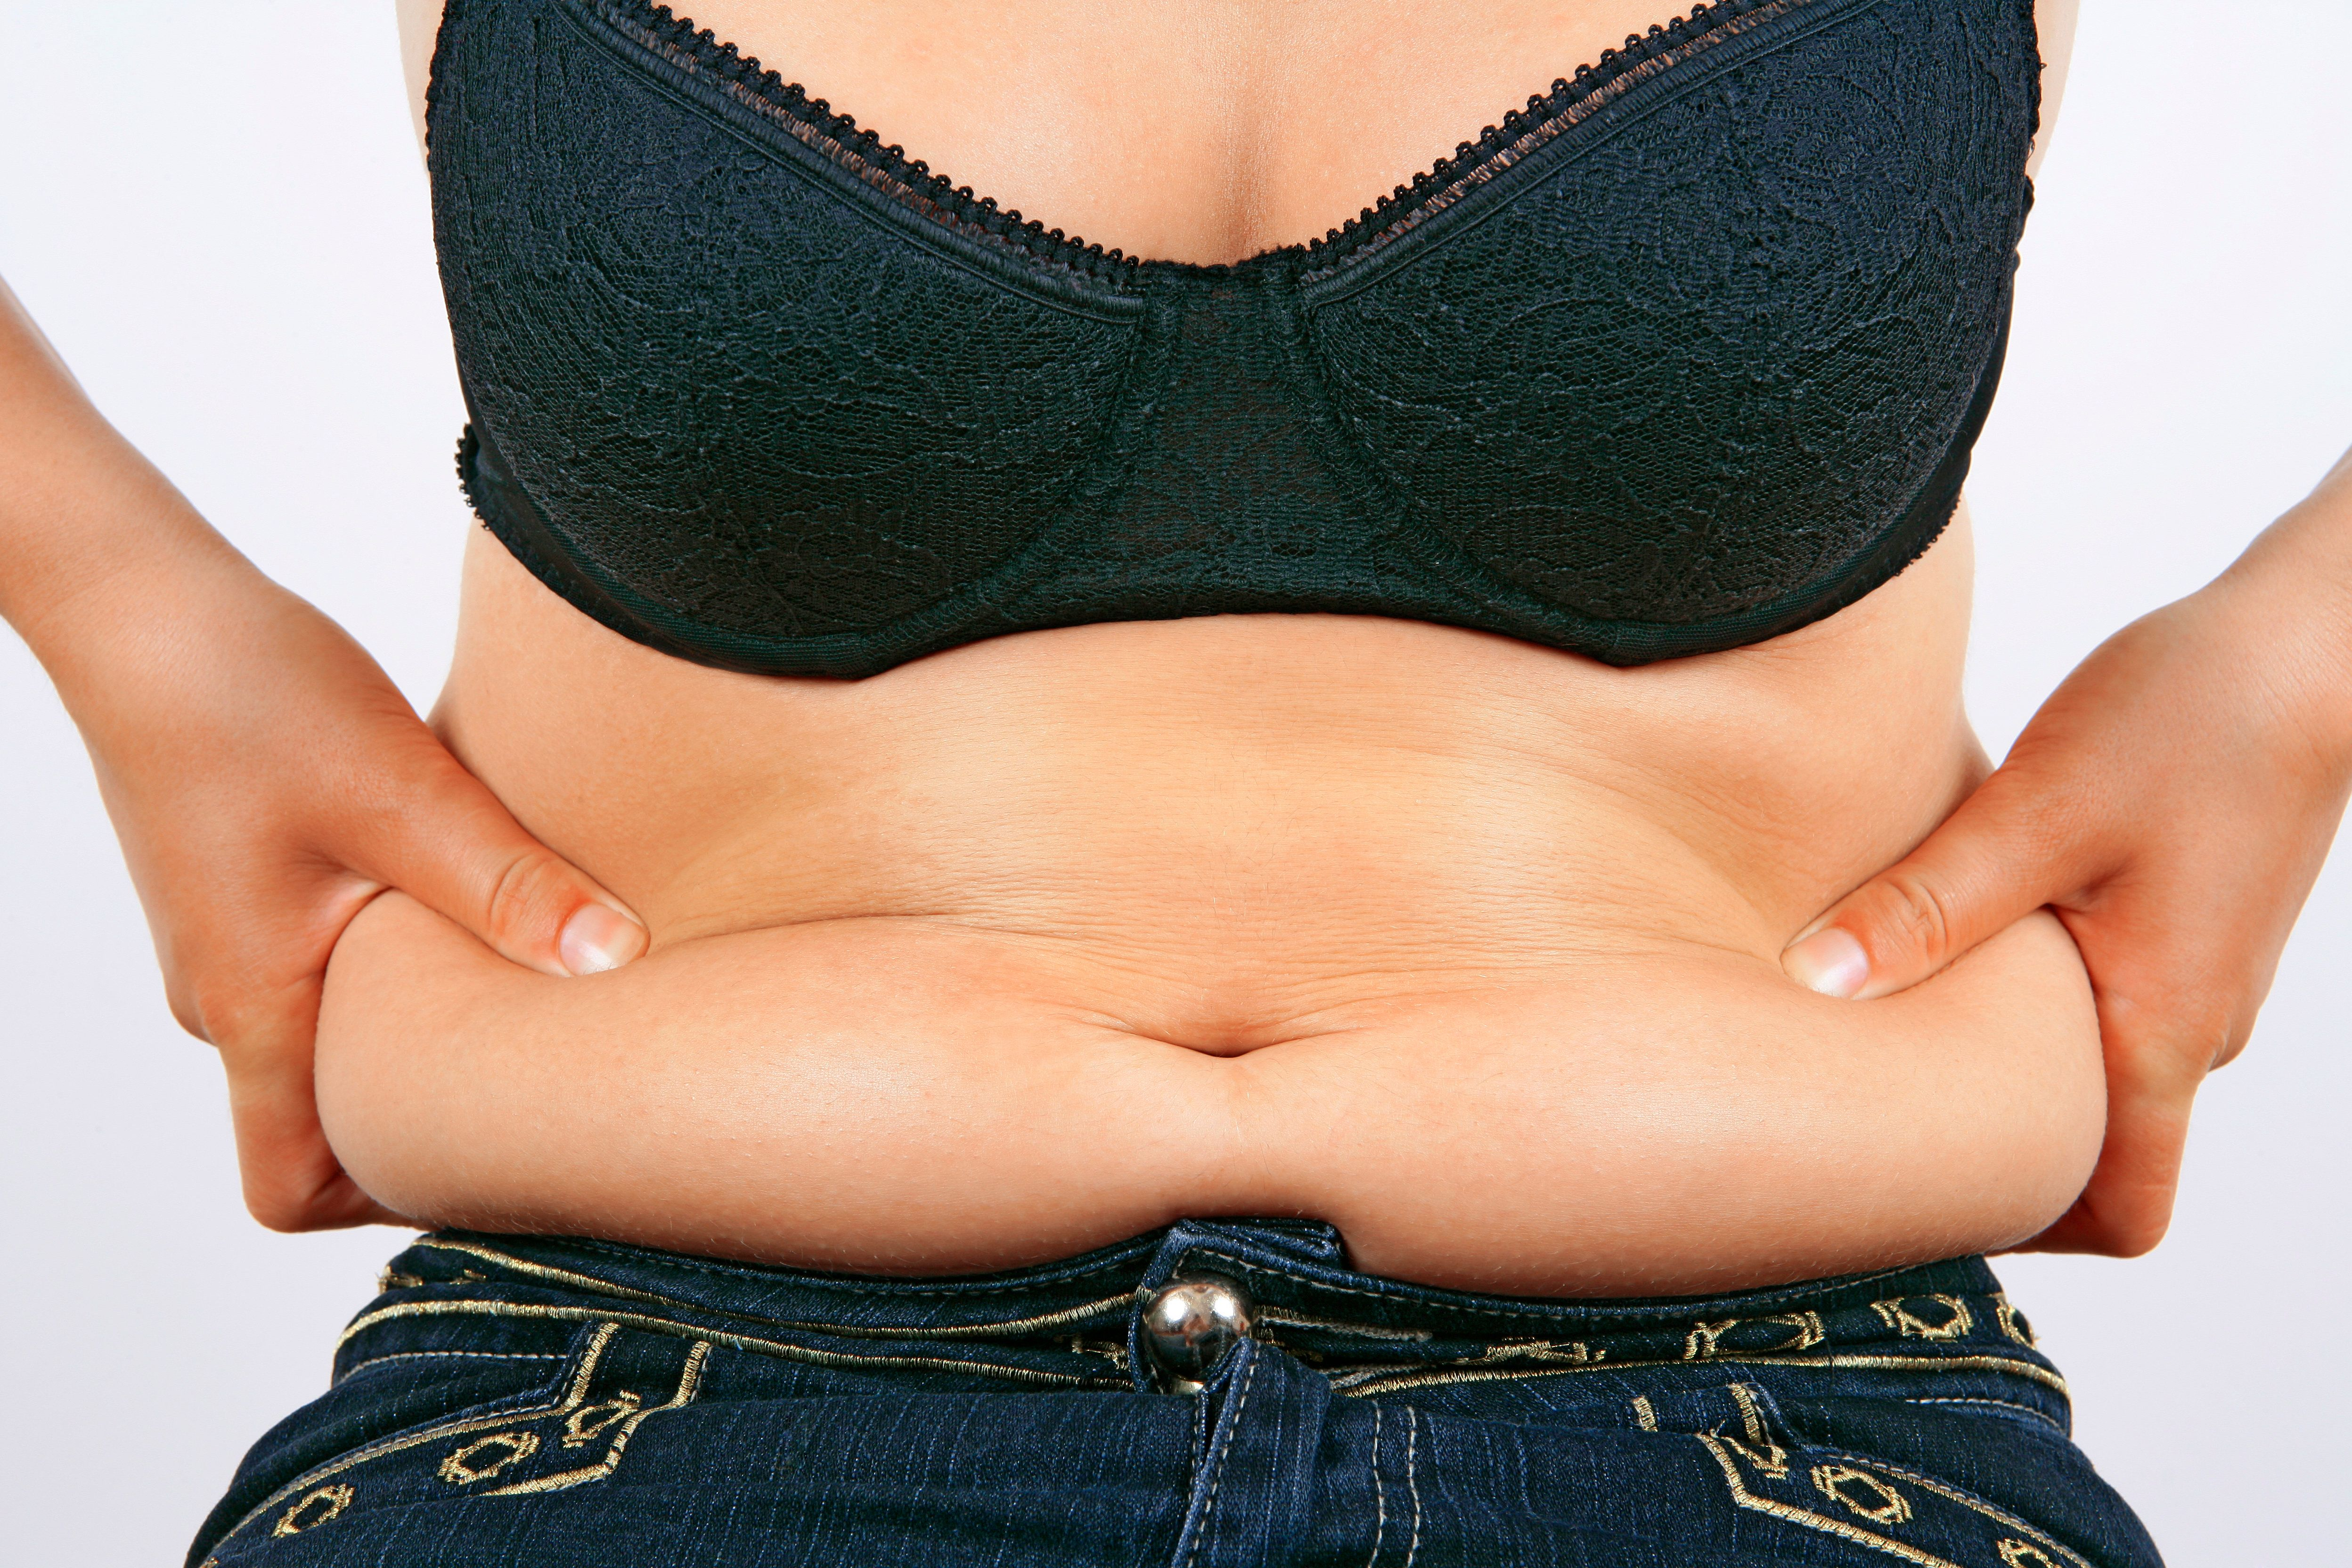 Mature women with flabby belly speaking, opinion